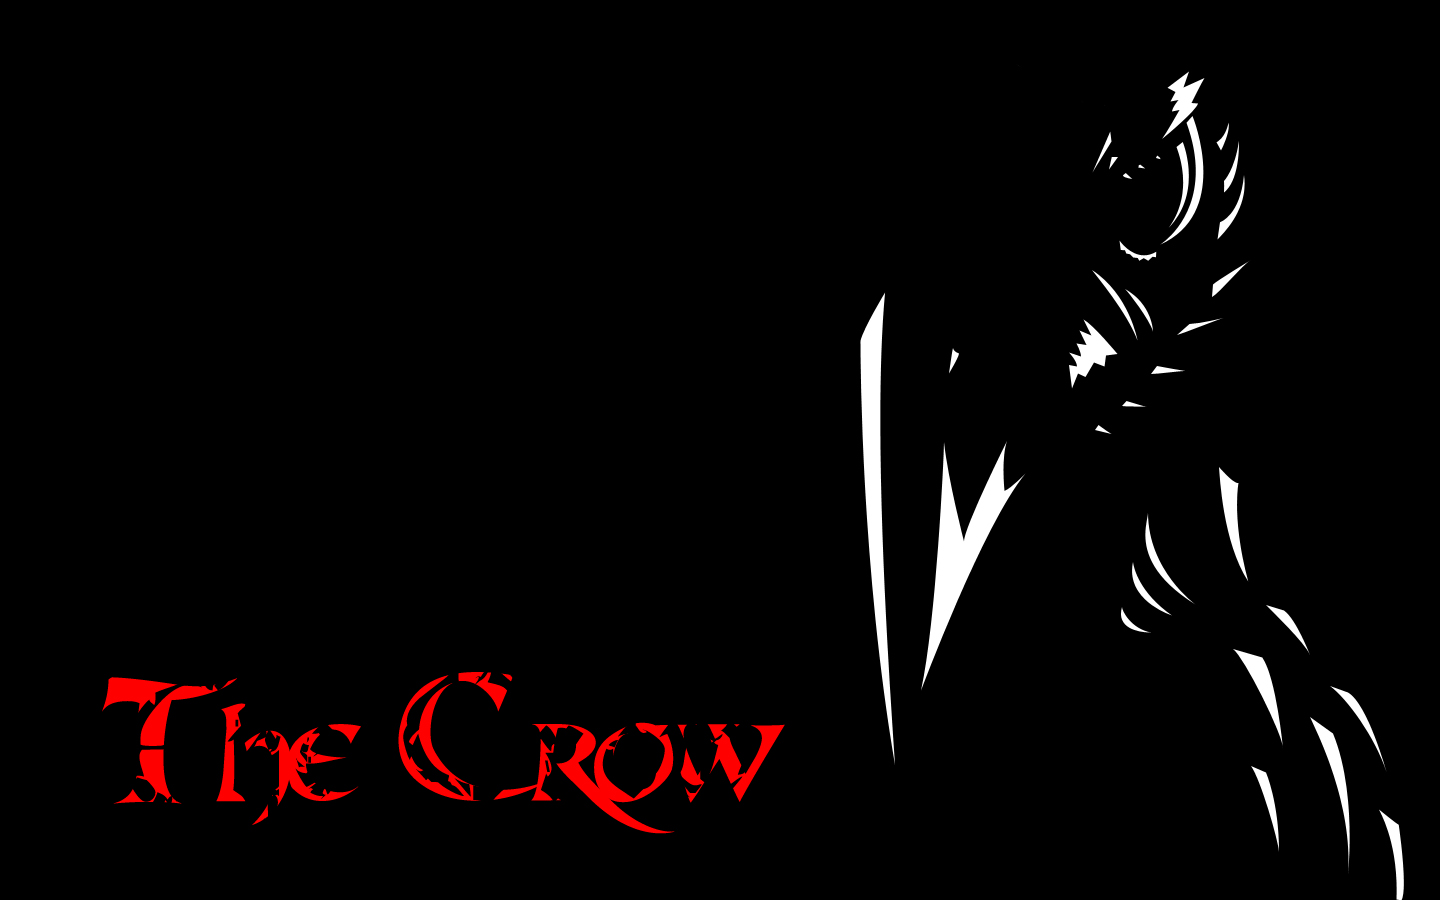 The Crow Wallpaper by Maskmaker24 on DeviantArt